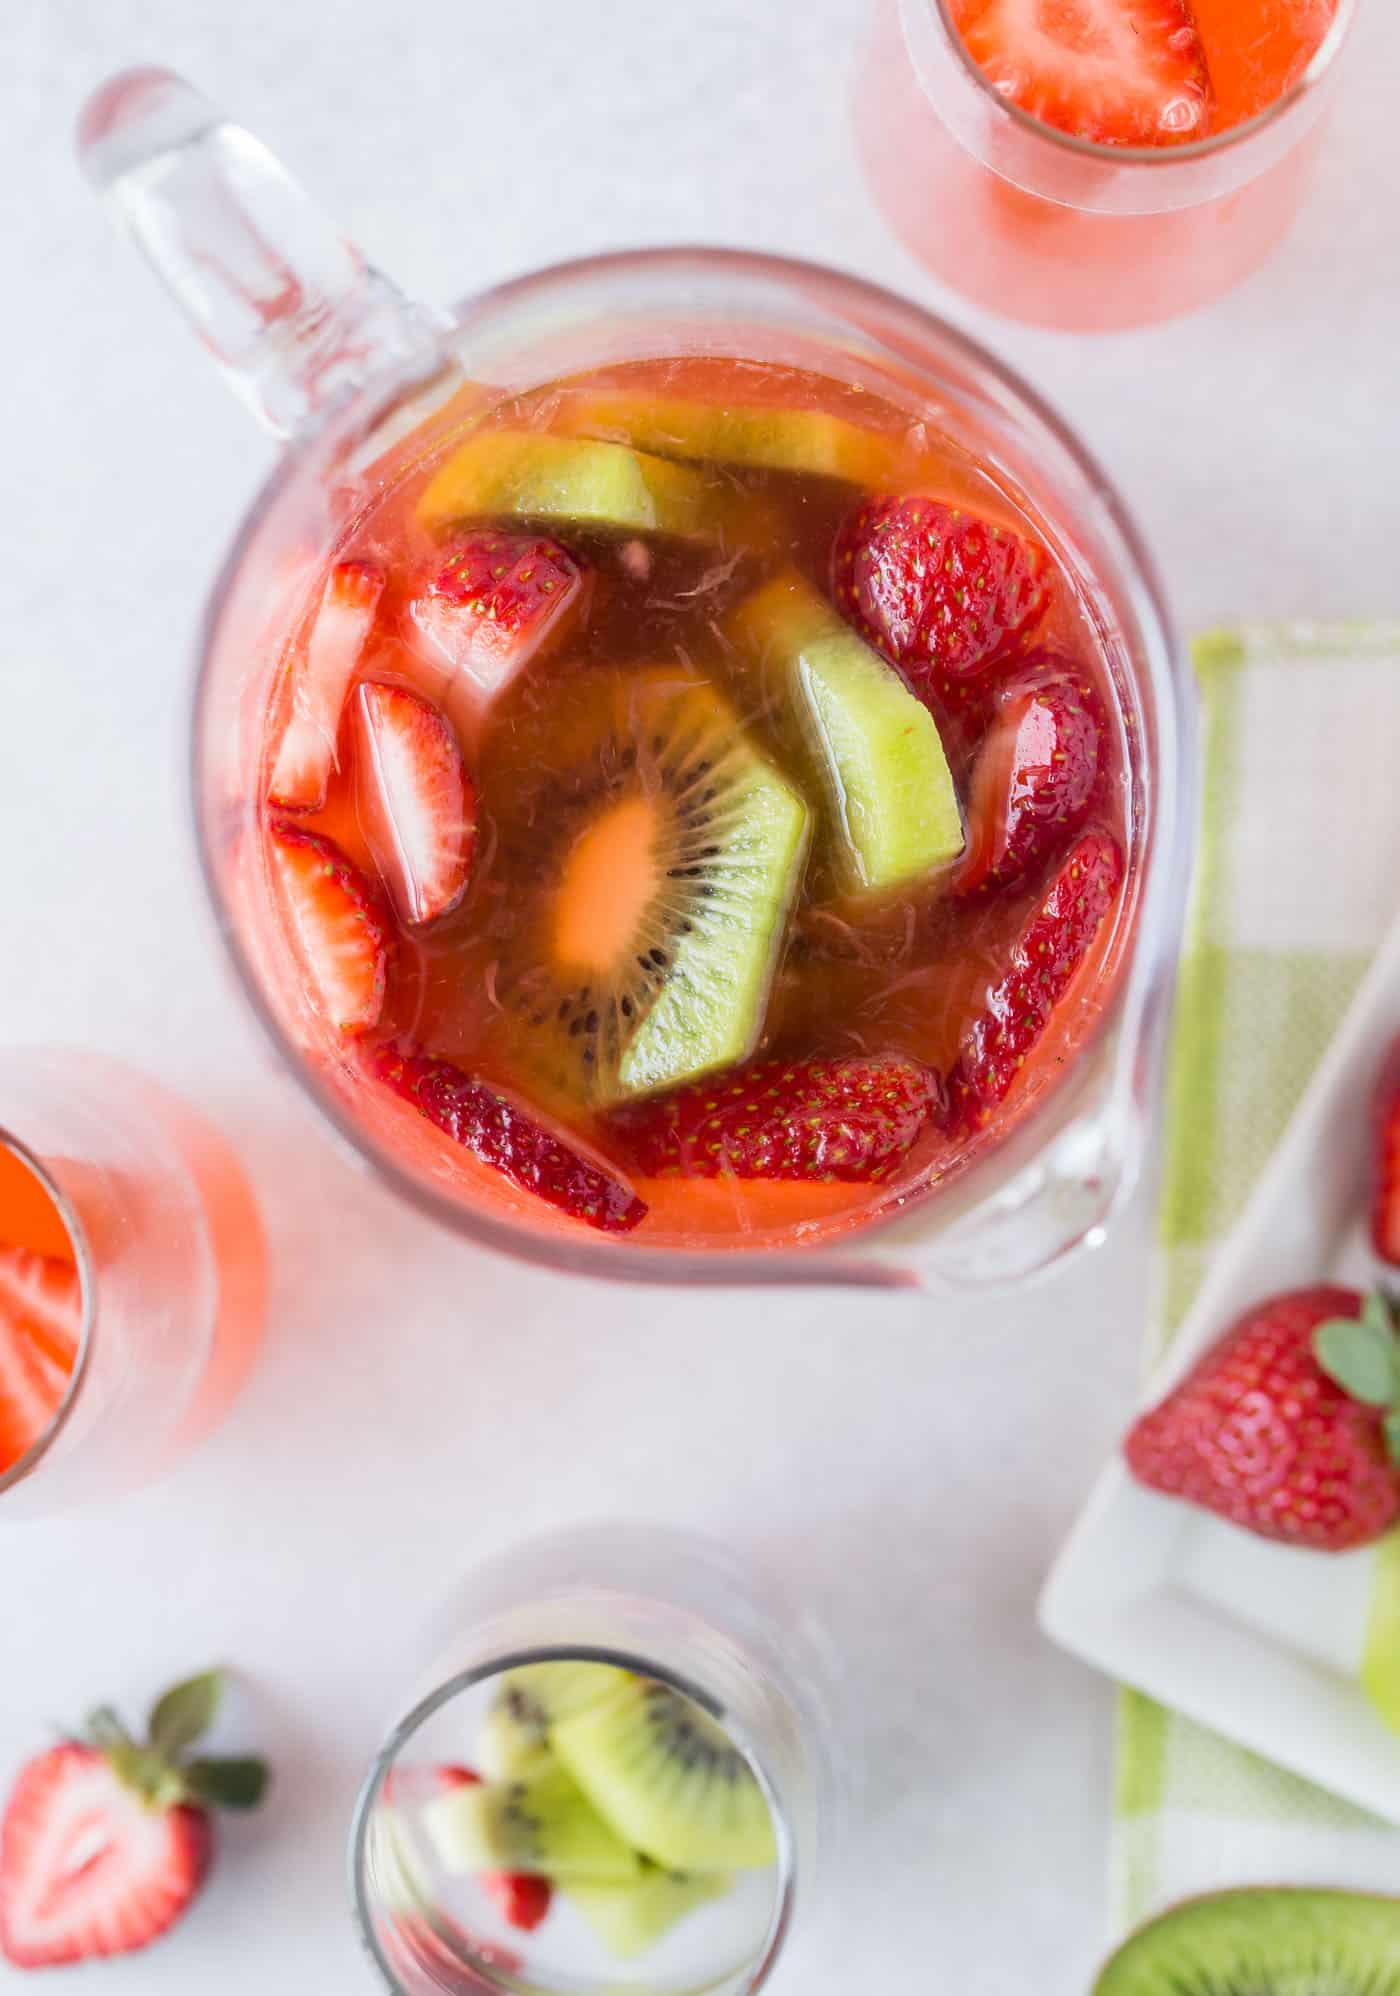 pitcher full of strawberries, kiwi and rym with extra sliced kiwi and strawberries on side for garnish.